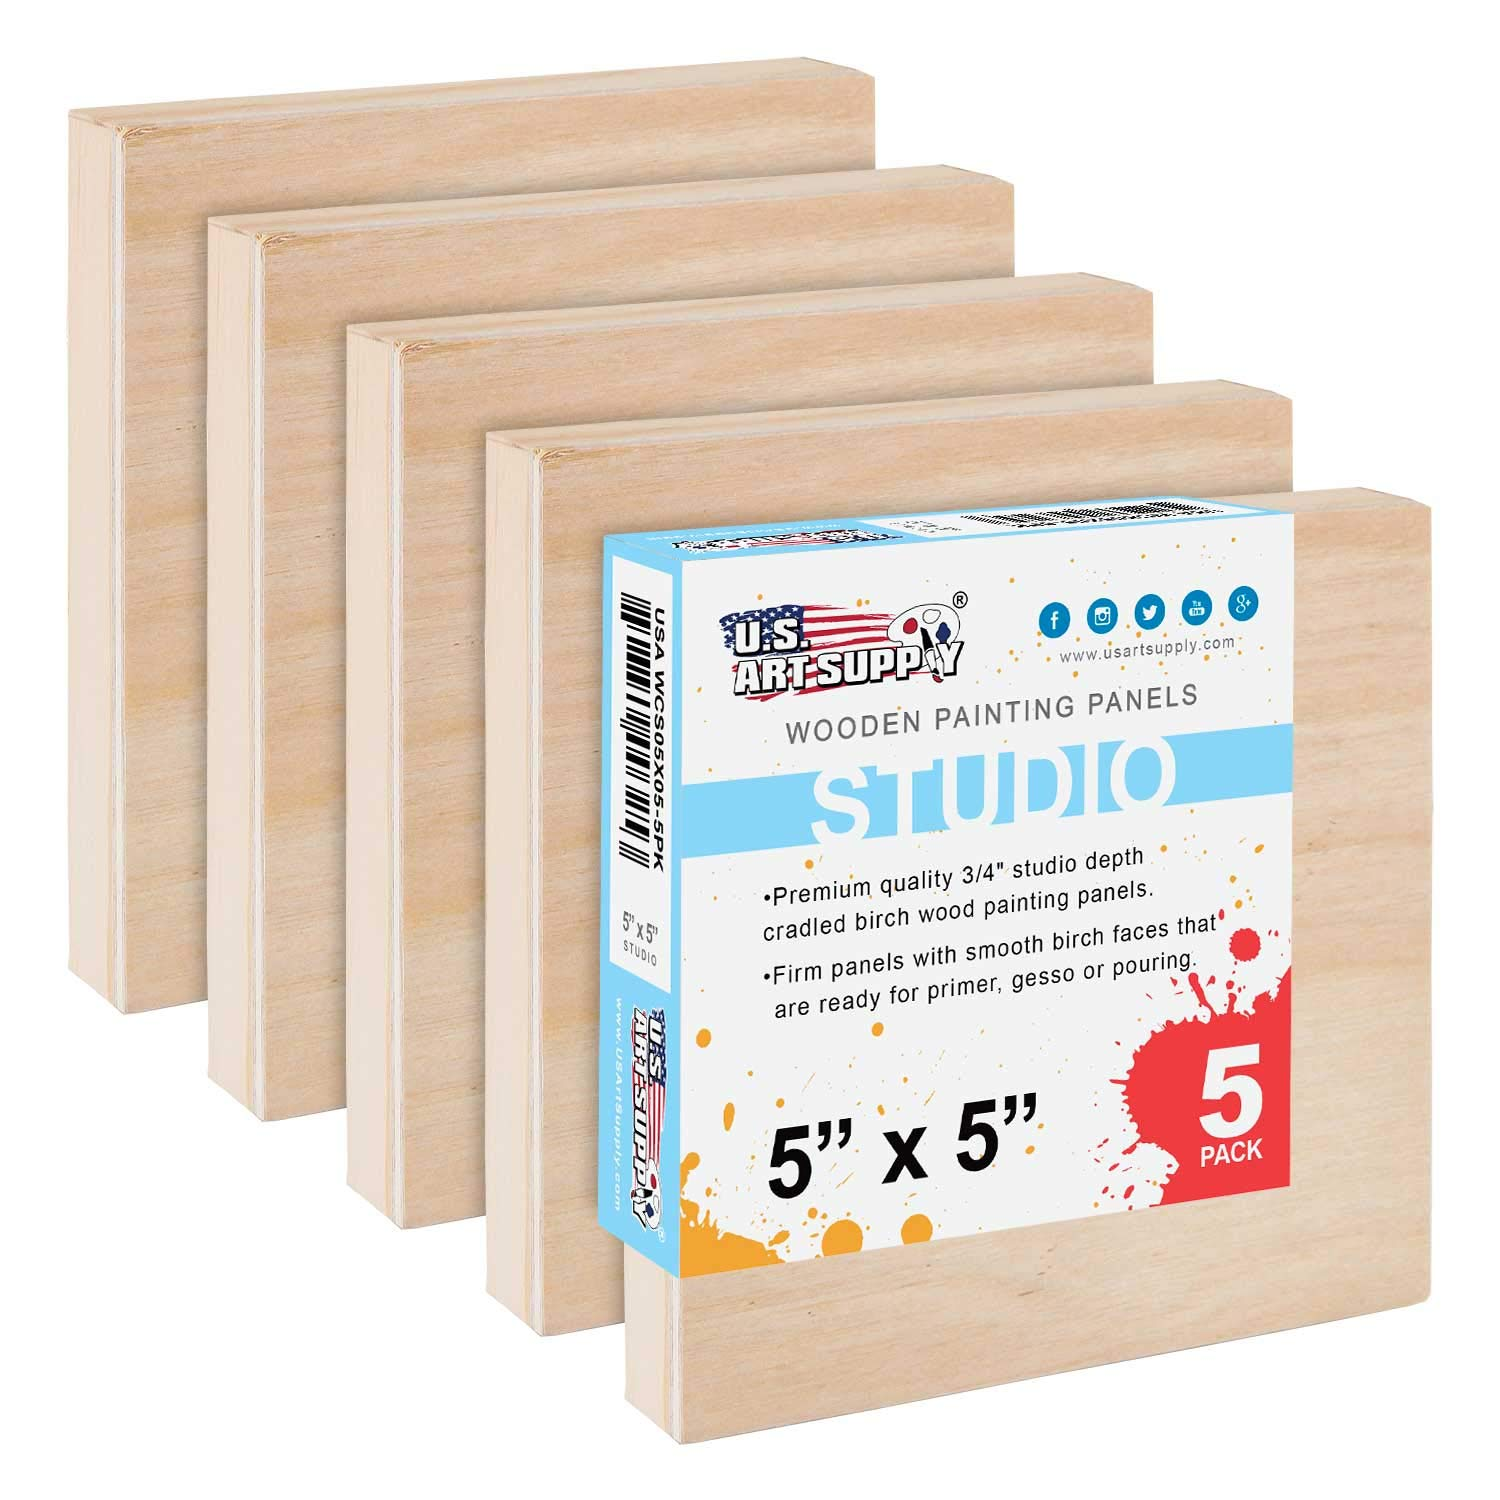 U.S Studio 3//4 Deep Cradle - Artist Wooden Wall Canvases Painting Mixed-Media Craft Oil Encaustic Acrylic Watercolor Pack of 5 Art Supply 5 x 5 Birch Wood Paint Pouring Panel Boards